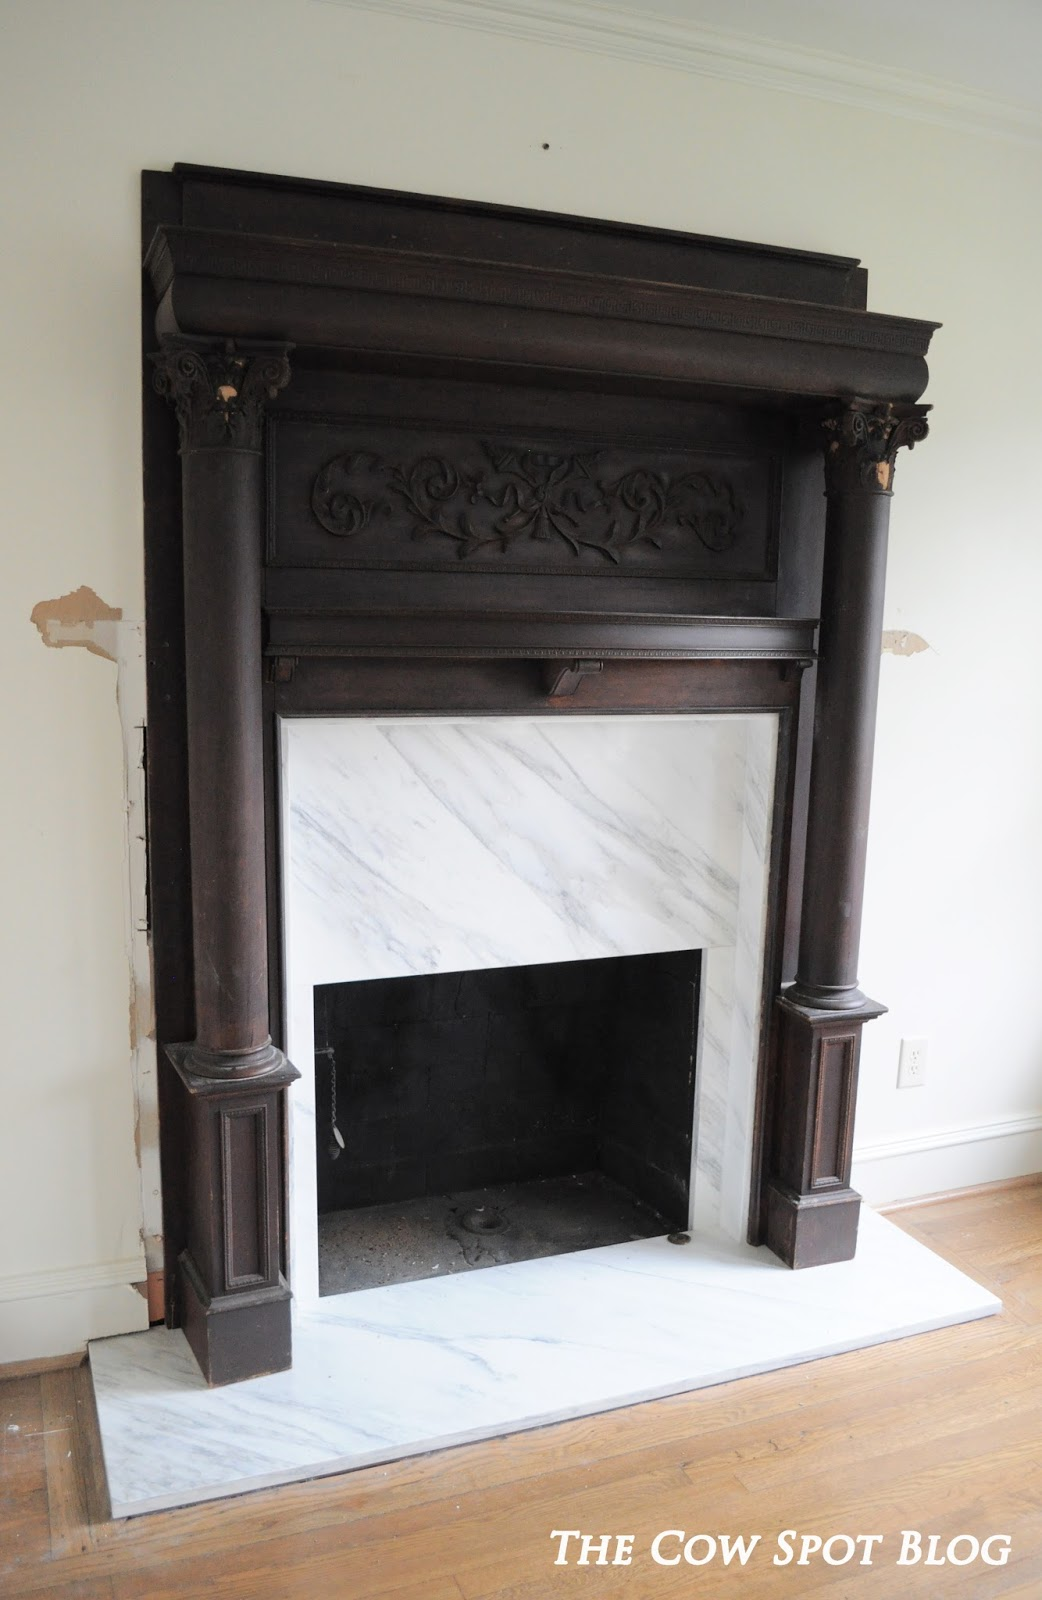 and we had ourselves a beautiful finished marble fireplace surround